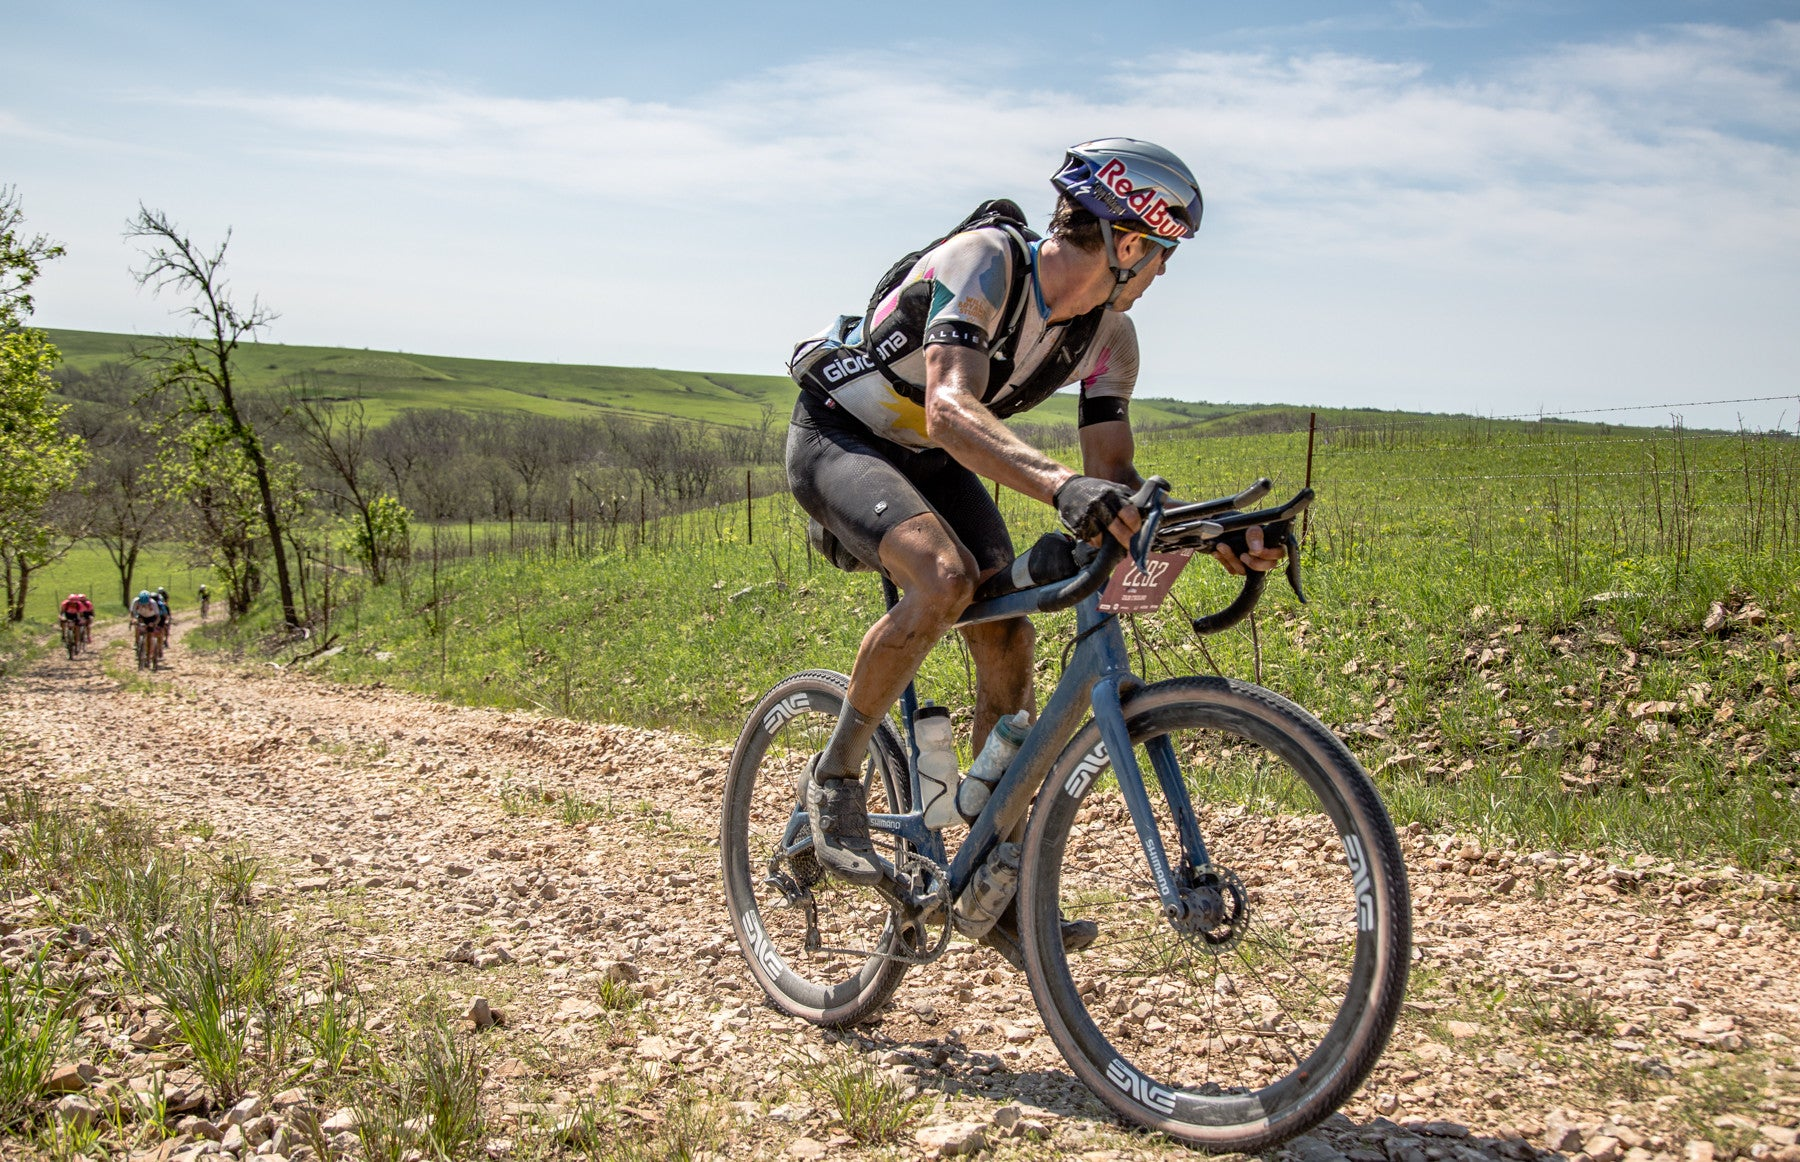 Colin Strickland making the winning move at Dirty Kanza